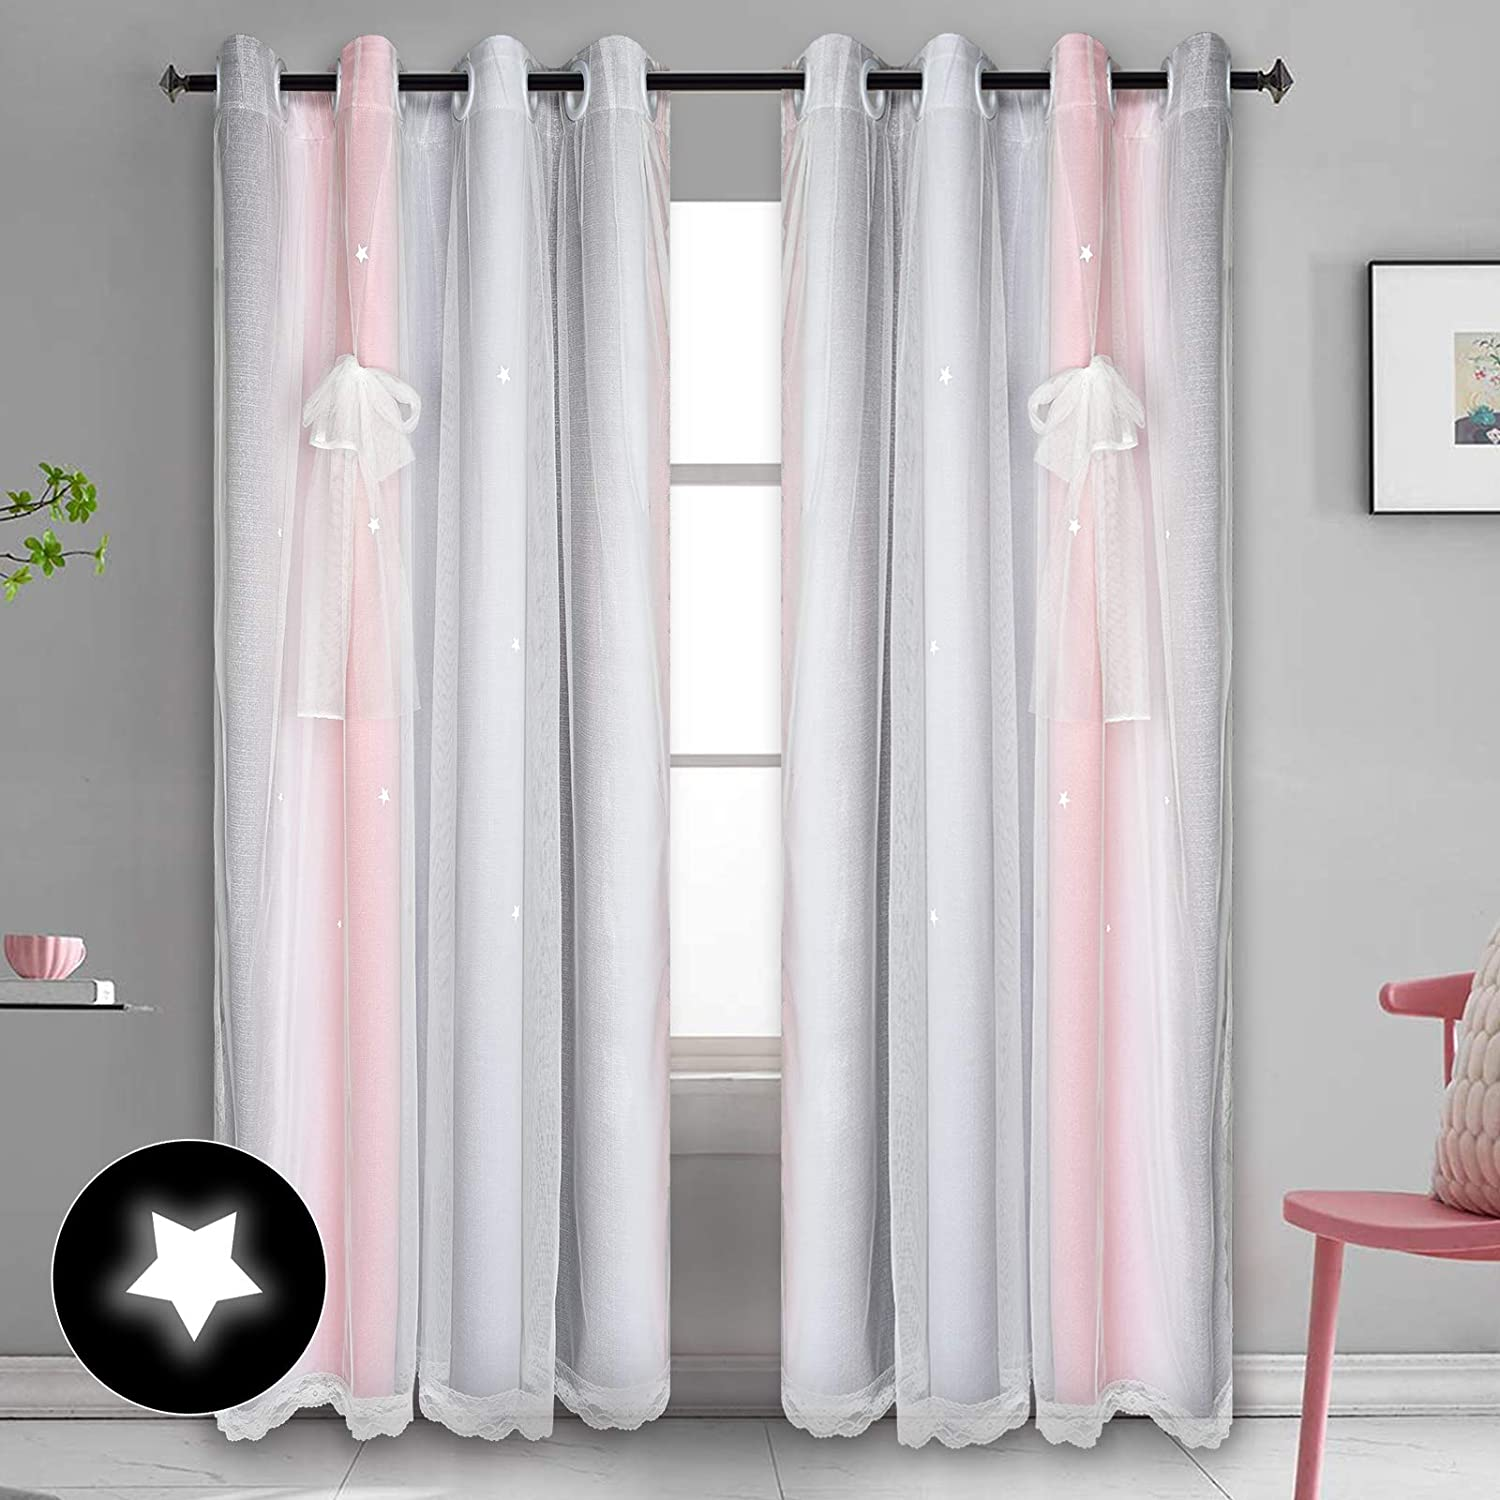 Star Blackout Curtains for Girls Kids Teen Bedroom, Pink Grey OmbreStripe Window Curtain Panels, 2 Layer Lace Drapes, Room Darkening Curtain for Living Room Decor, 2 Panels, 52 x 84 Inch